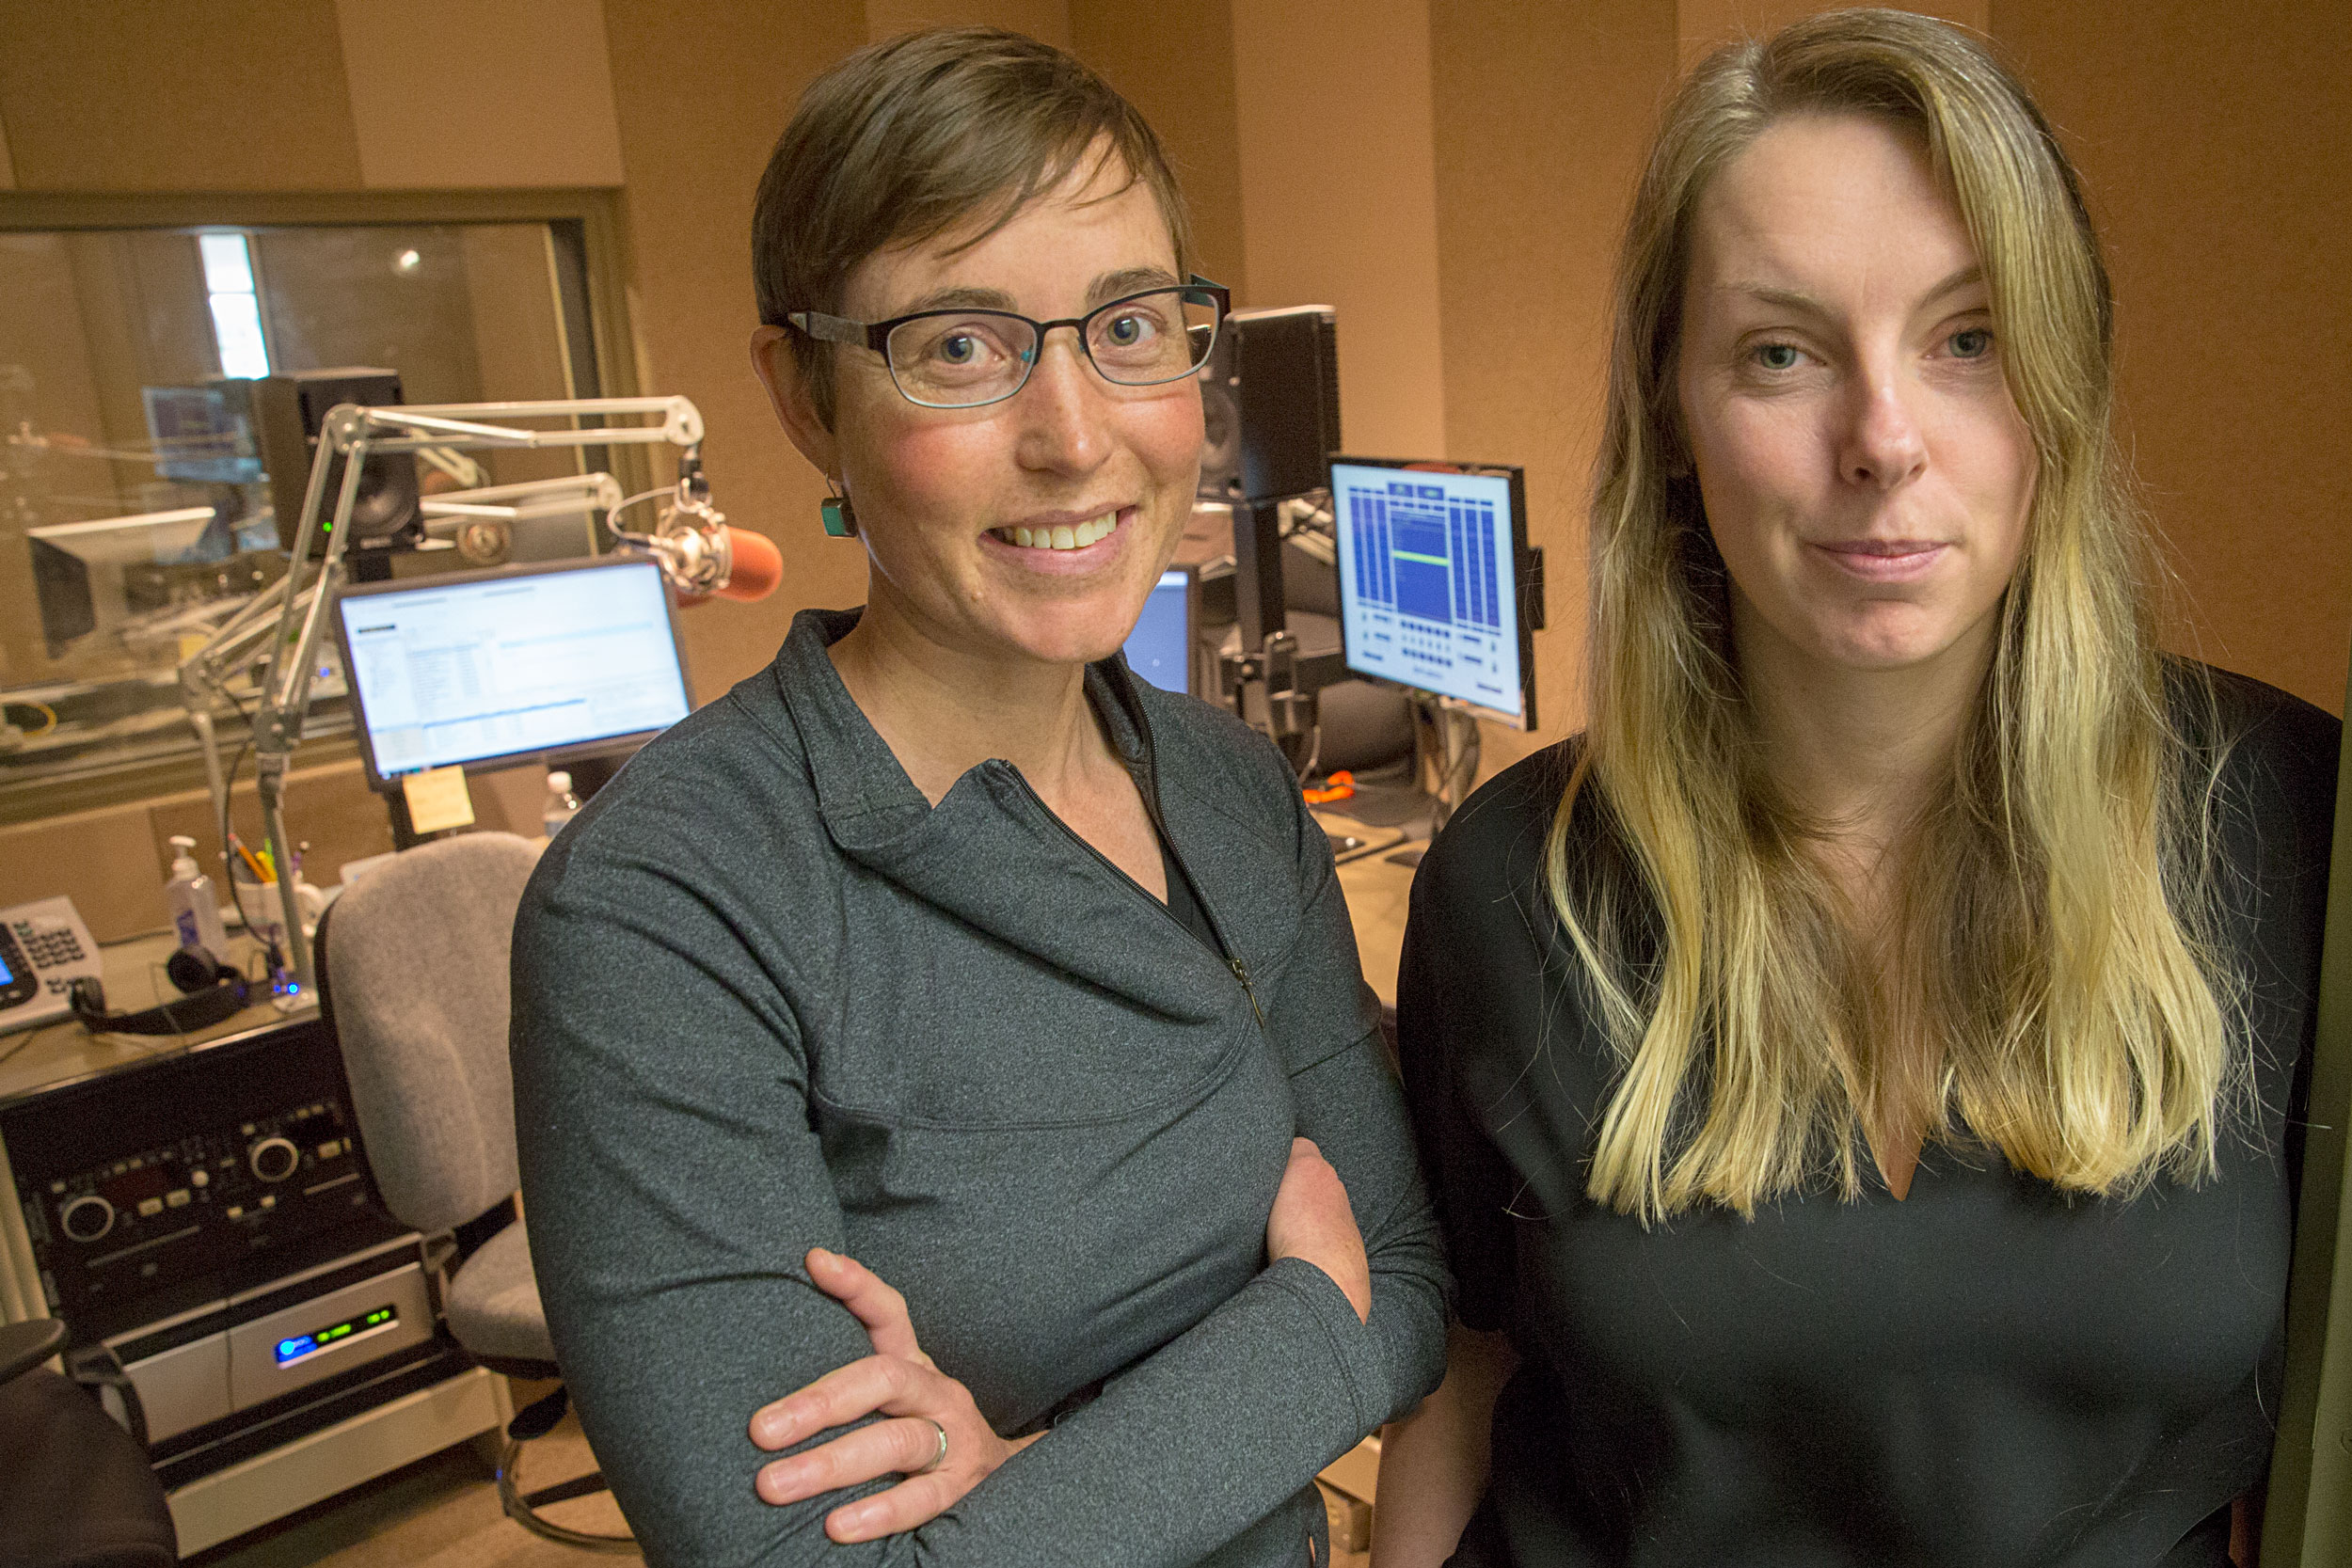 Twila Moon, at left, and Maria Caffrey at the CPR News studios Friday Nov. 15 2019. The two are climate scientists who discussed the line between activism and science.